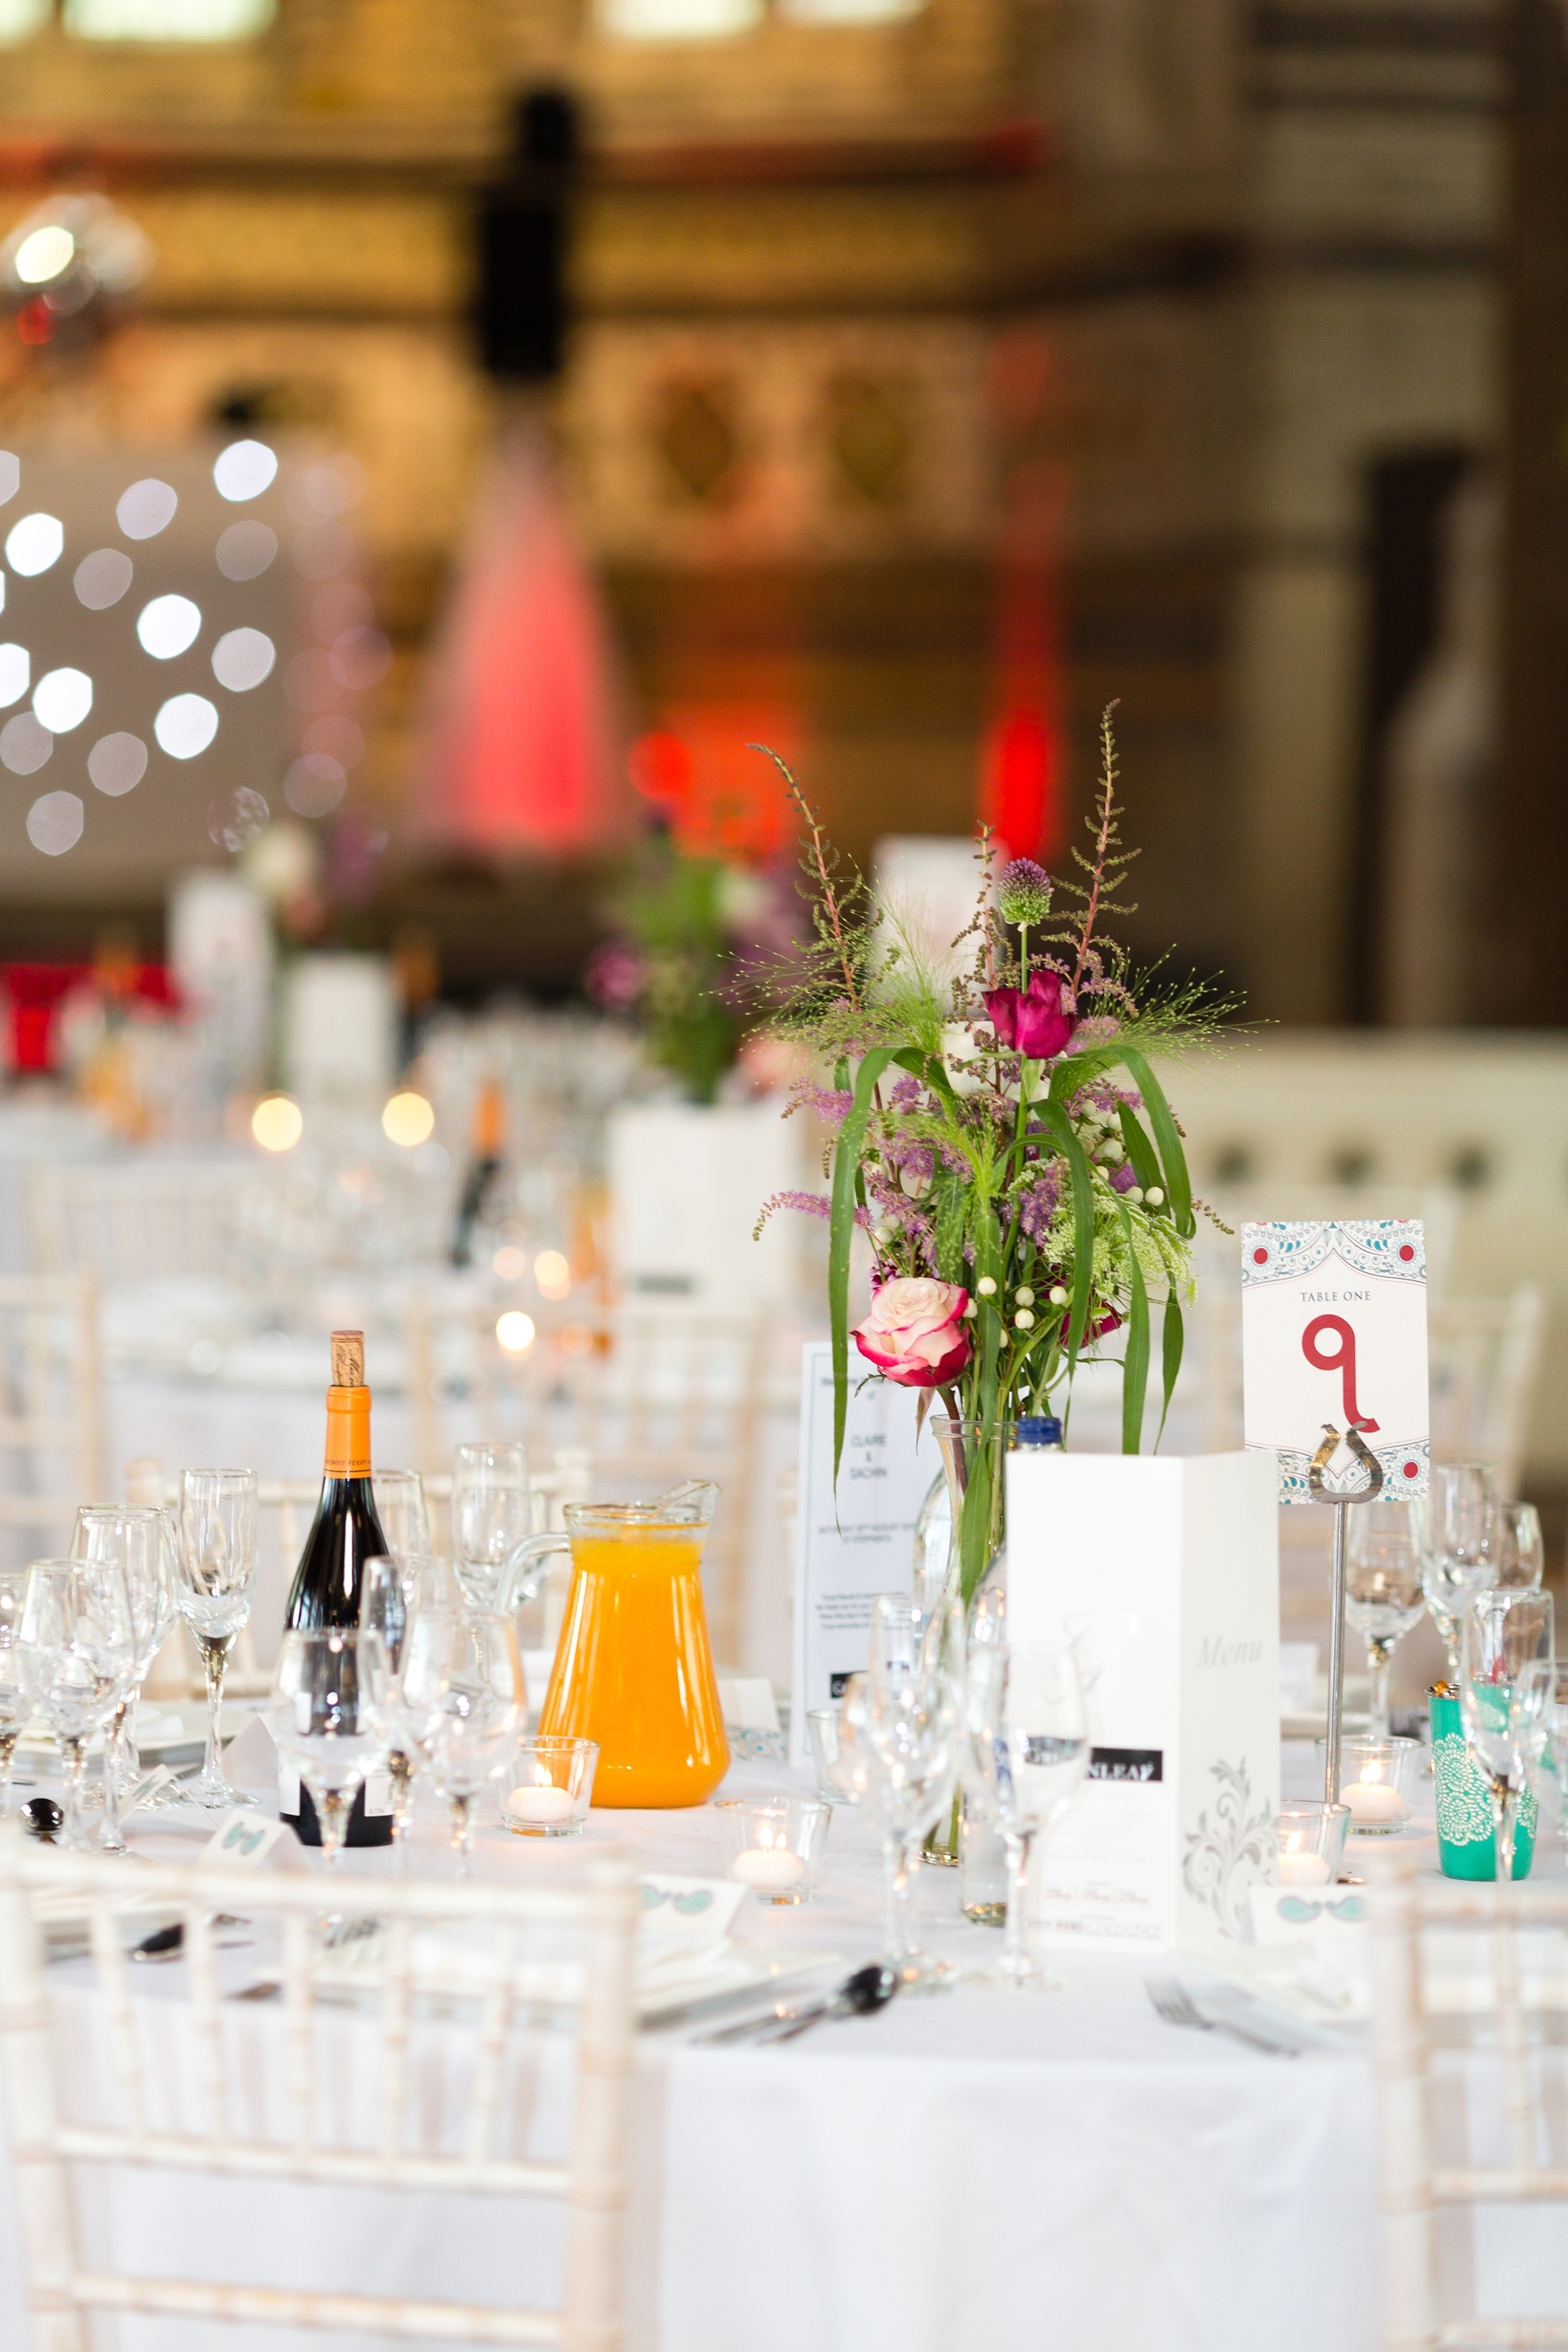 St Stephens Hampstead Heath Wedding Venue table details with windflowers